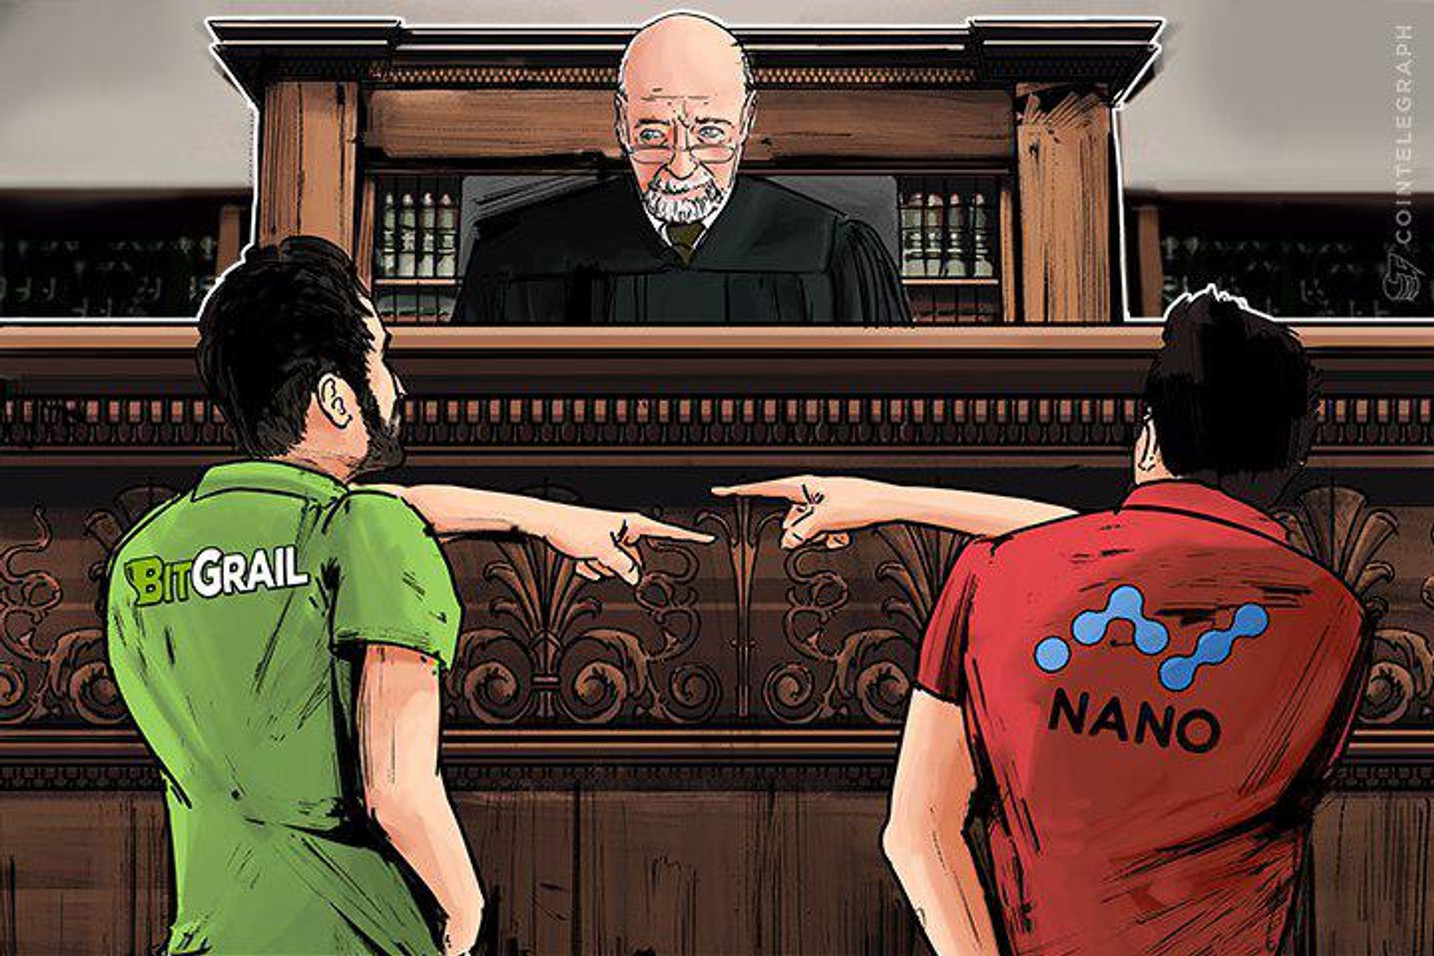 BitGrail Vs. Nano: Who Is Responsible For the $150 Million Theft?